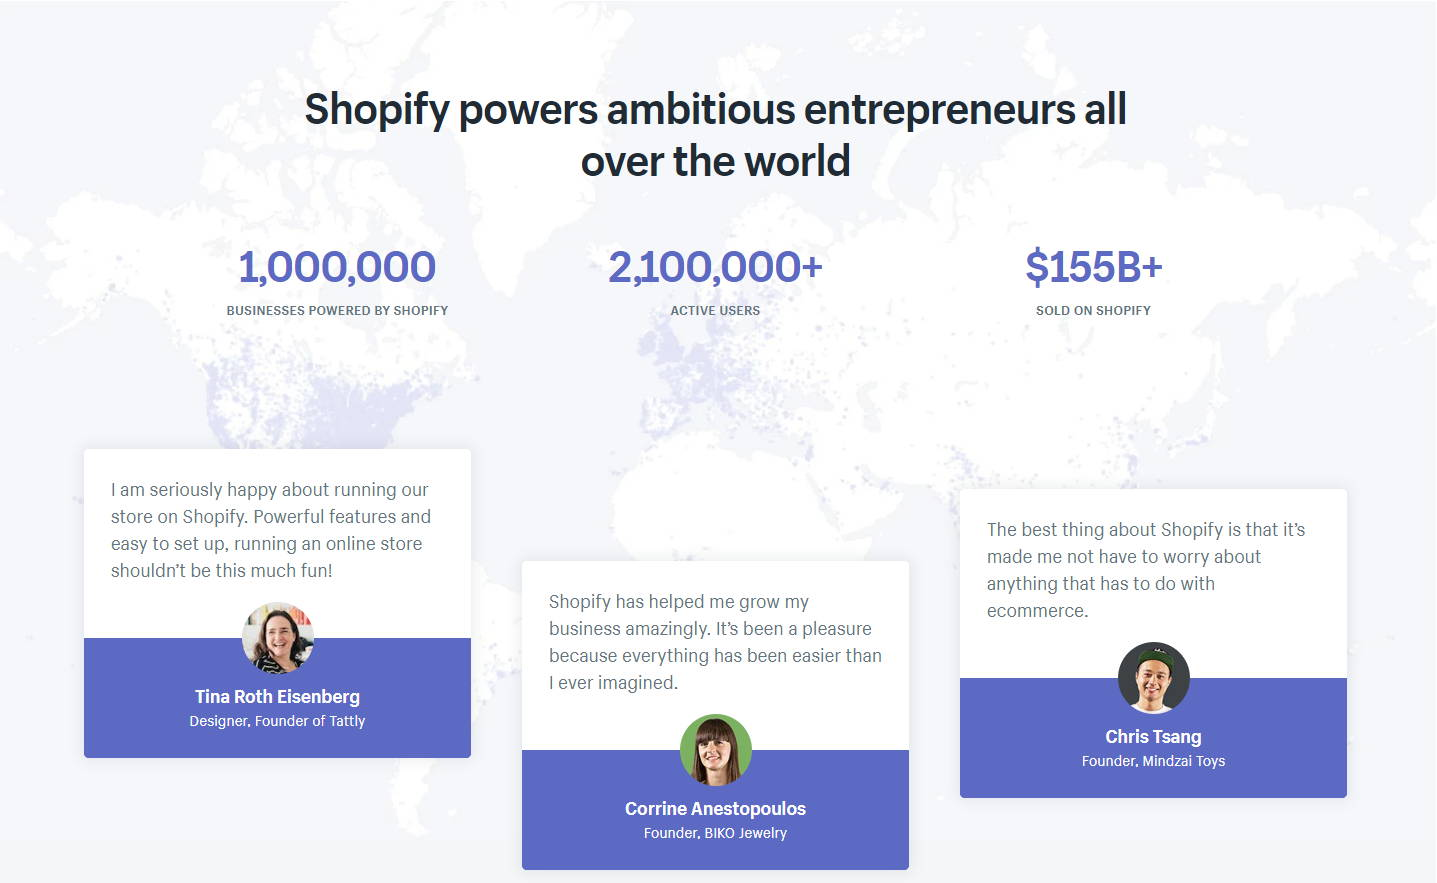 Ambitious entrepreneurs all over the world